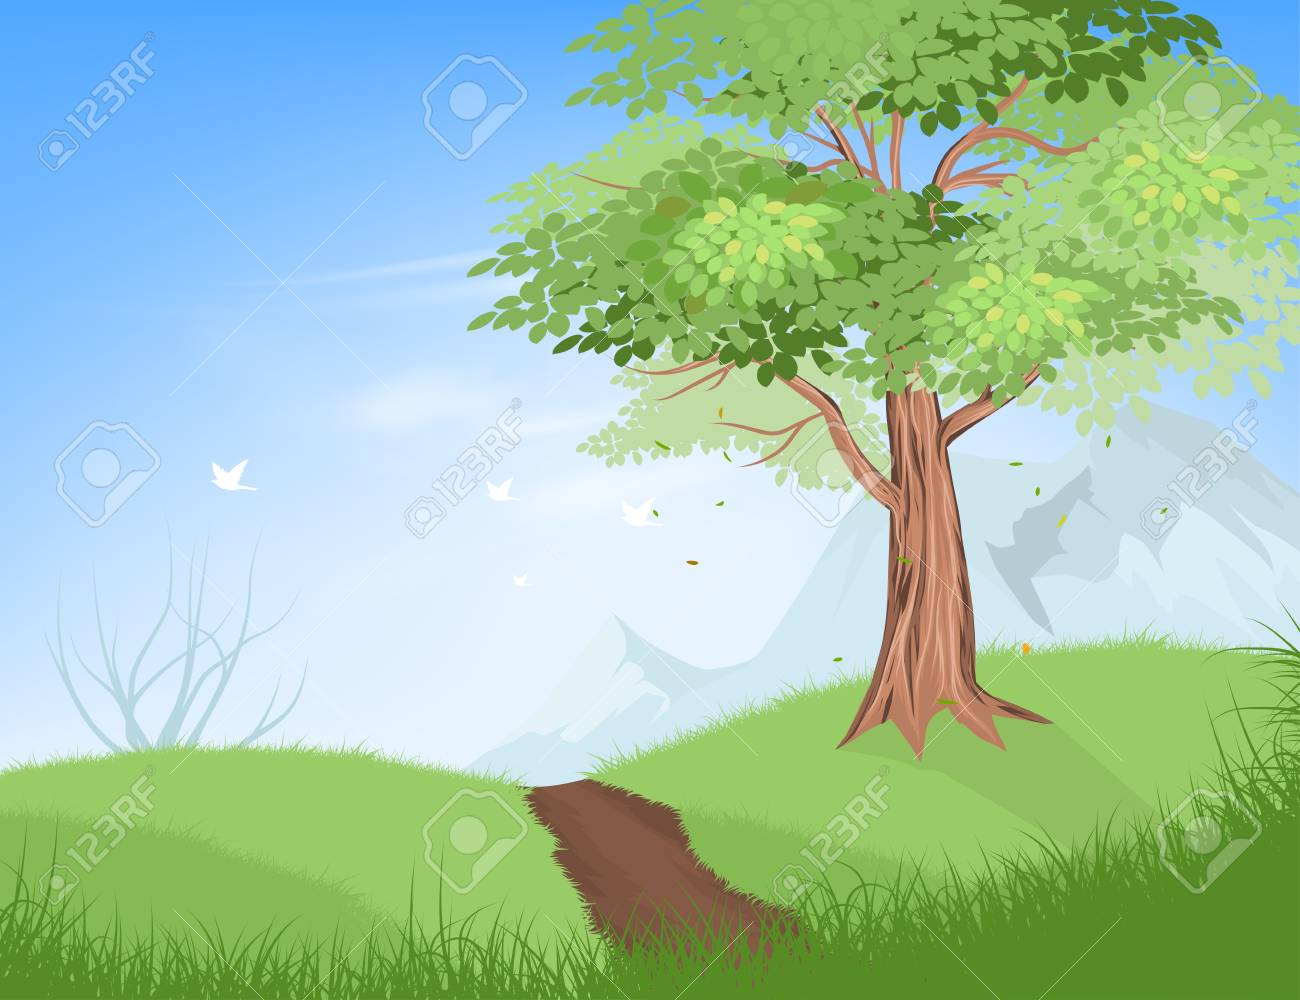 Tree On Hill Vector Nature Landscape Background Royalty Free Cliparts Vectors And Stock Illustration Image 73648453